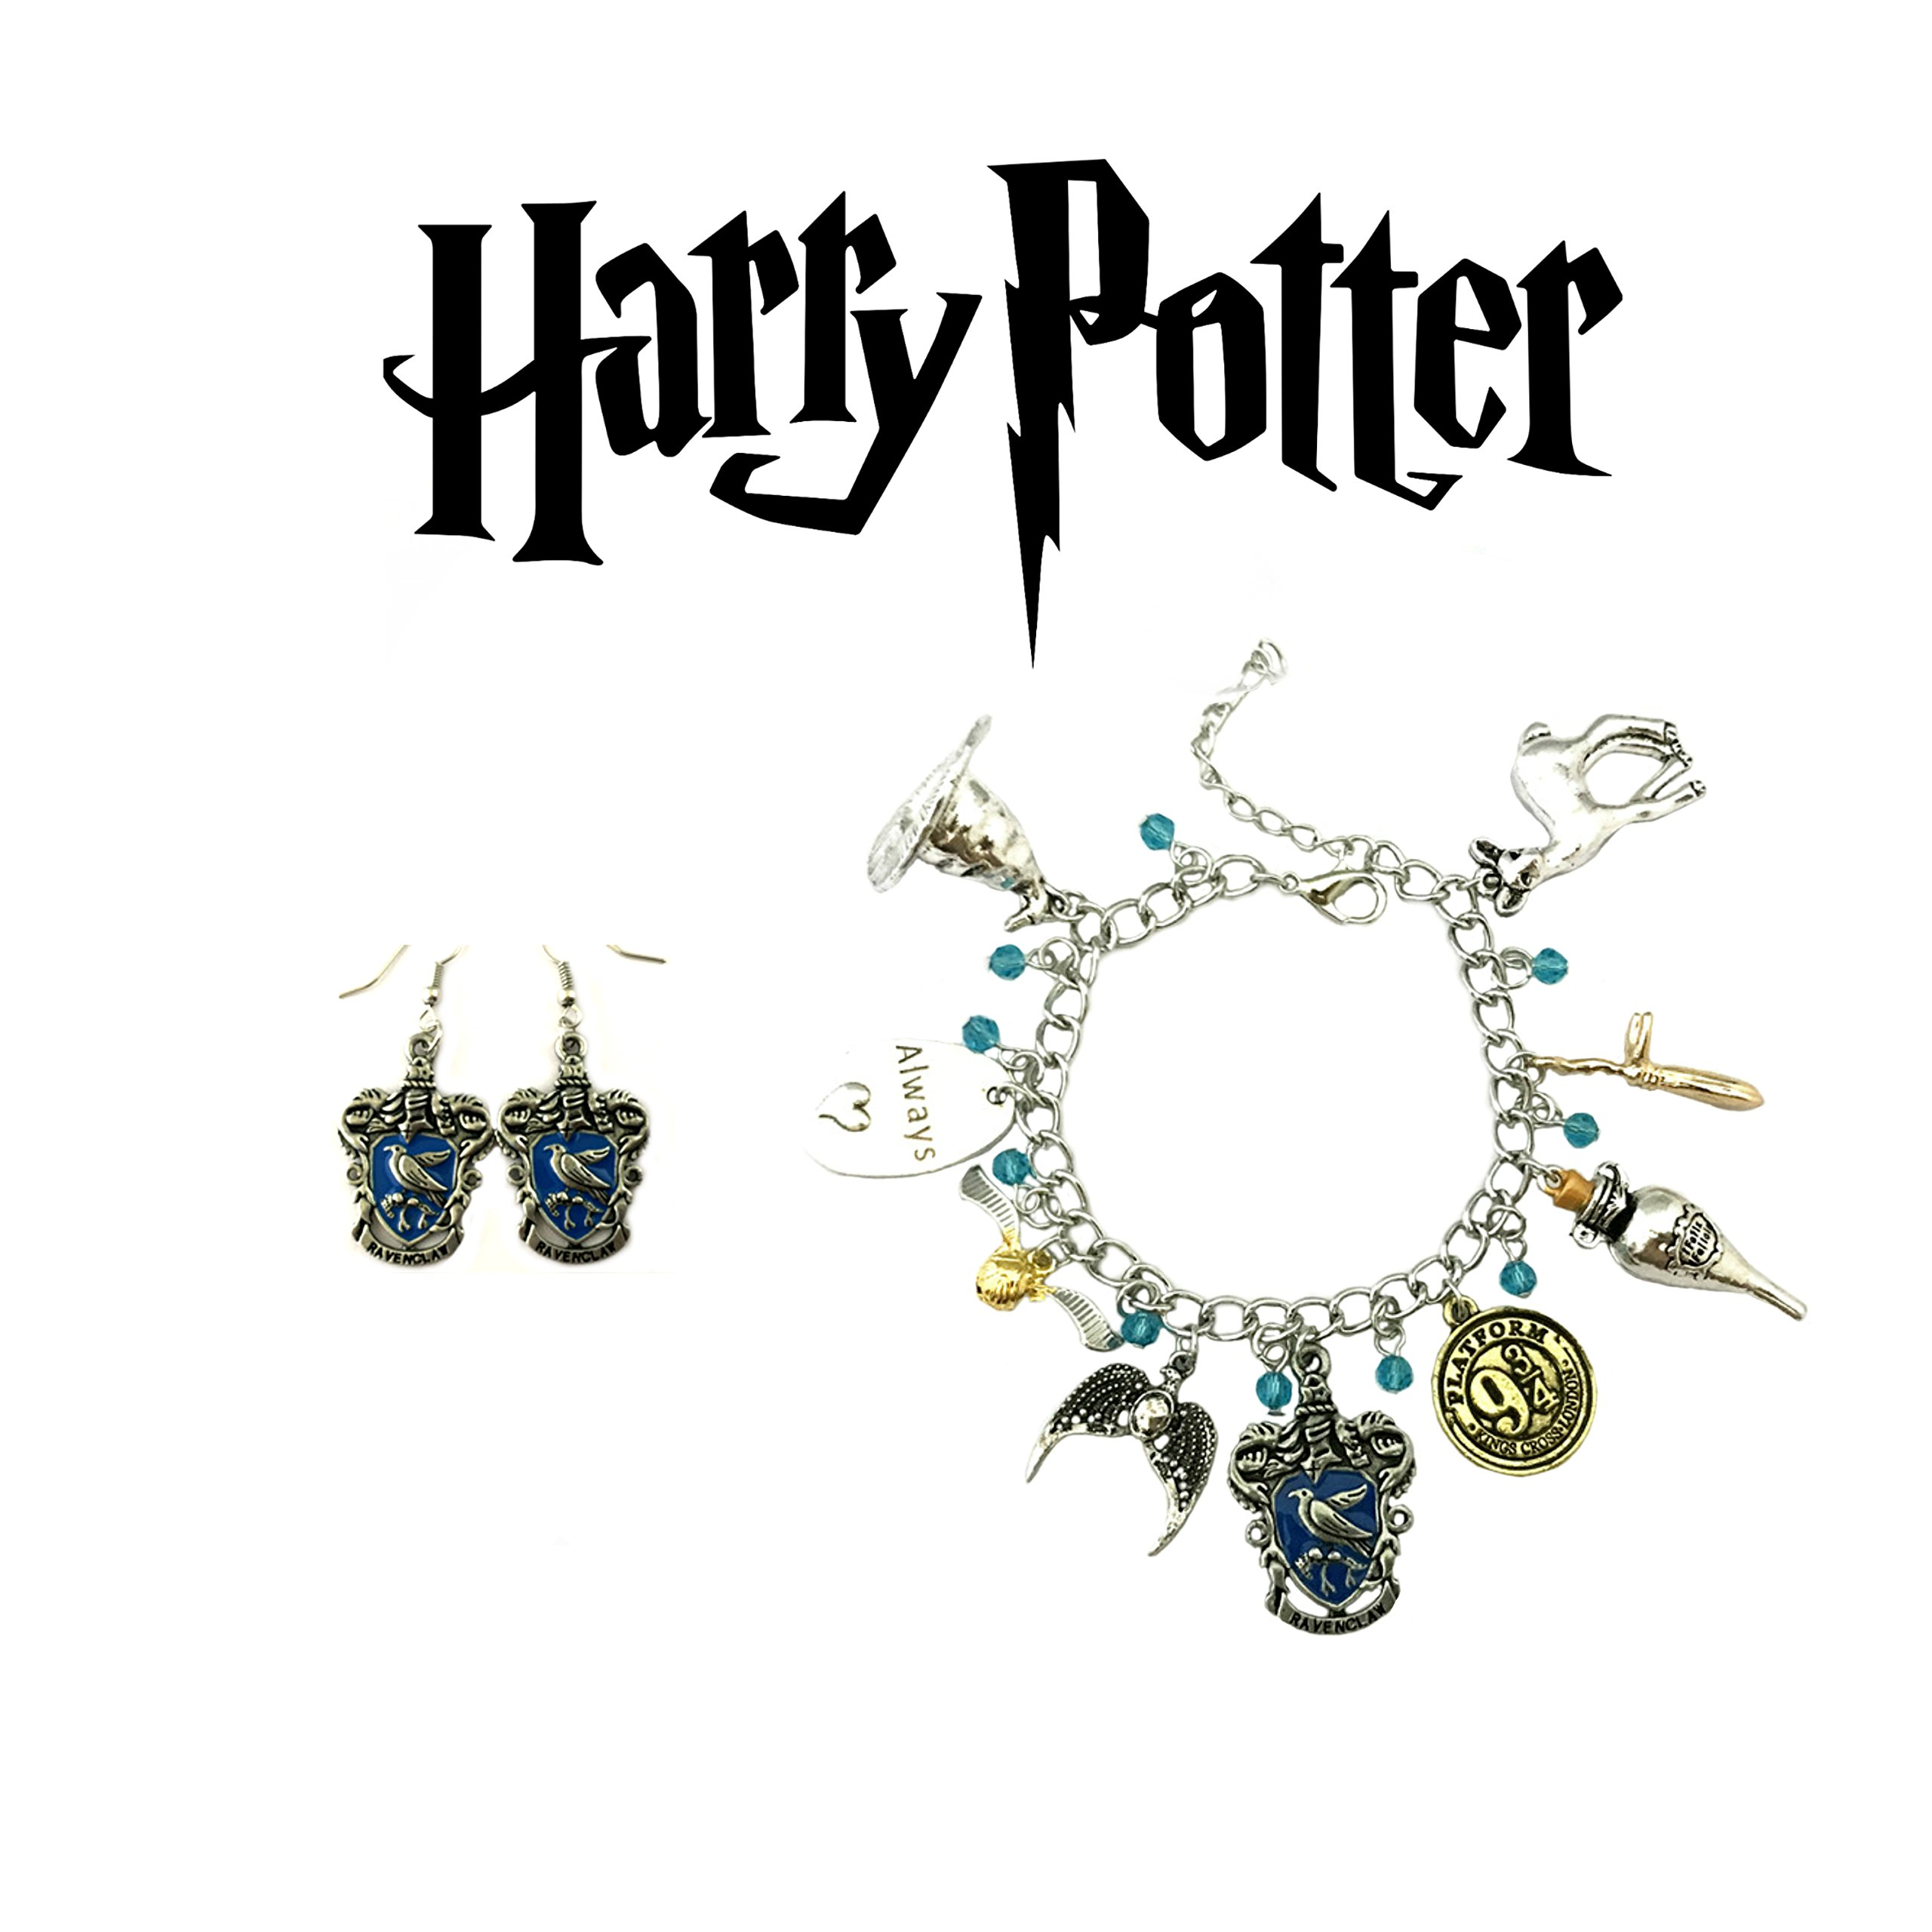 Harry Potter Bracelet and Earrings Ravenclaw House Crests 2 Pack Gift Set Logo Character Theme CosplayJewelry Gift Series